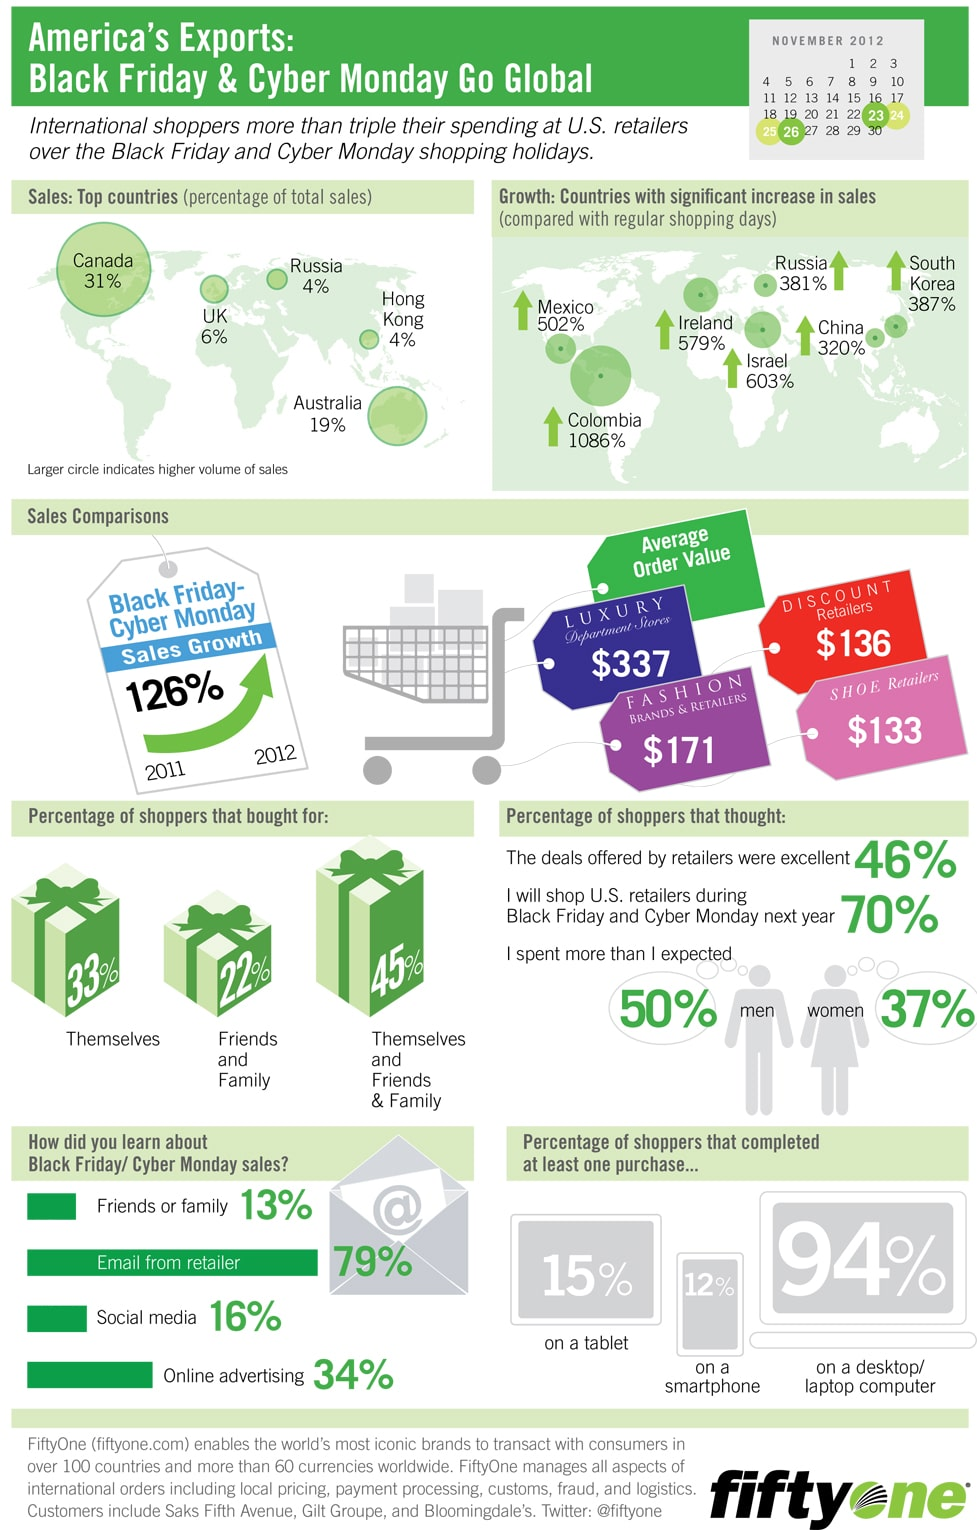 FiftyOne_BlackFriday_CyberMonday_Infographic (1)